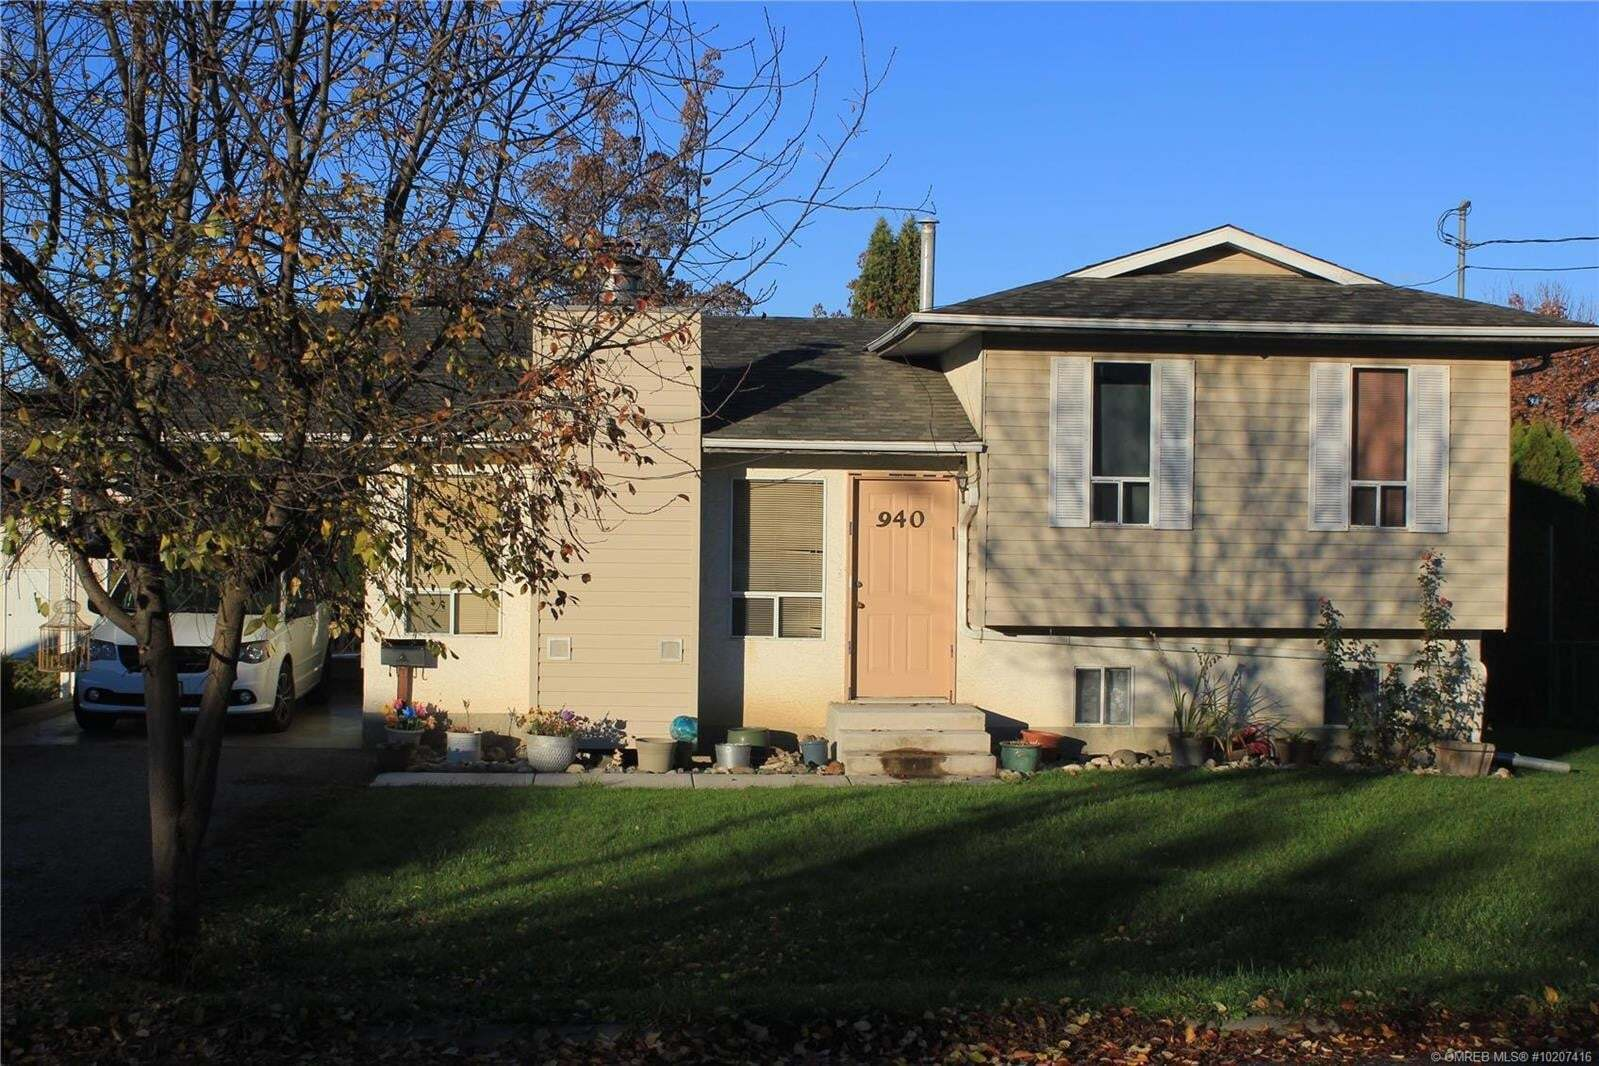 House for sale at Proposed A Maygard Rd Kelowna British Columbia - MLS: 10207416